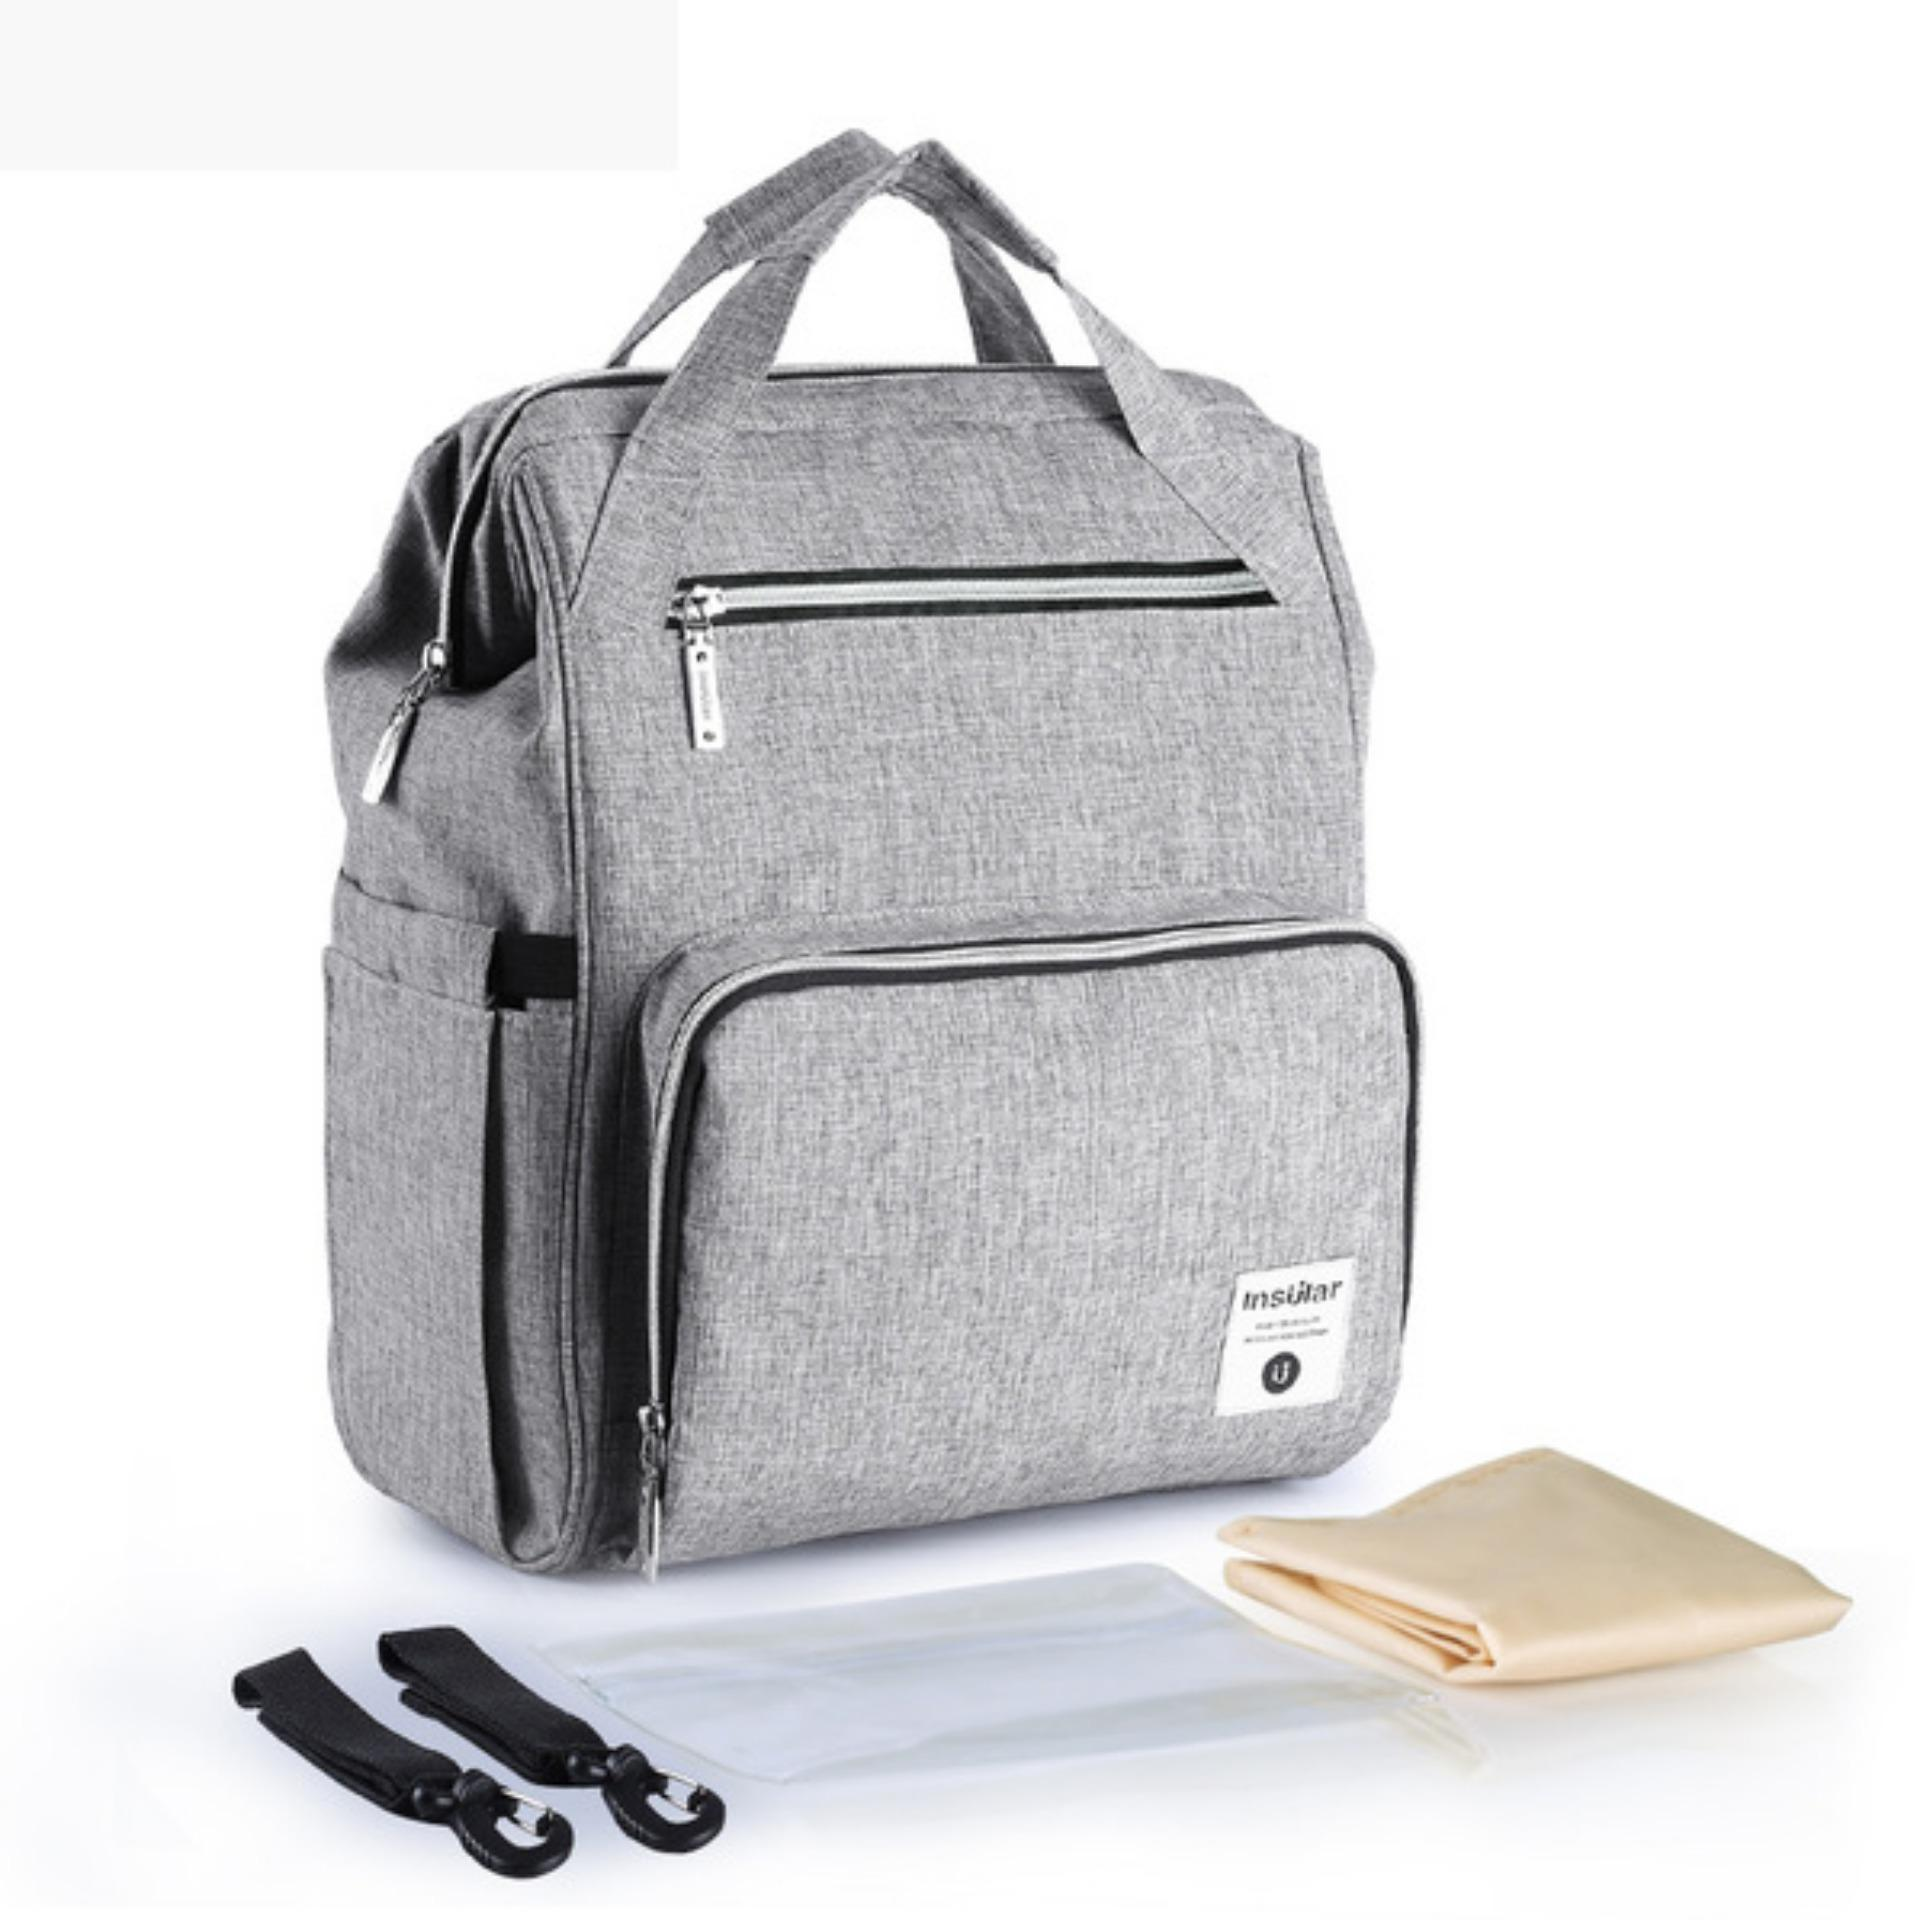 Buy Insular 2018 Fashion Diaper Tote Bag Diaper Backpack Grey Online China